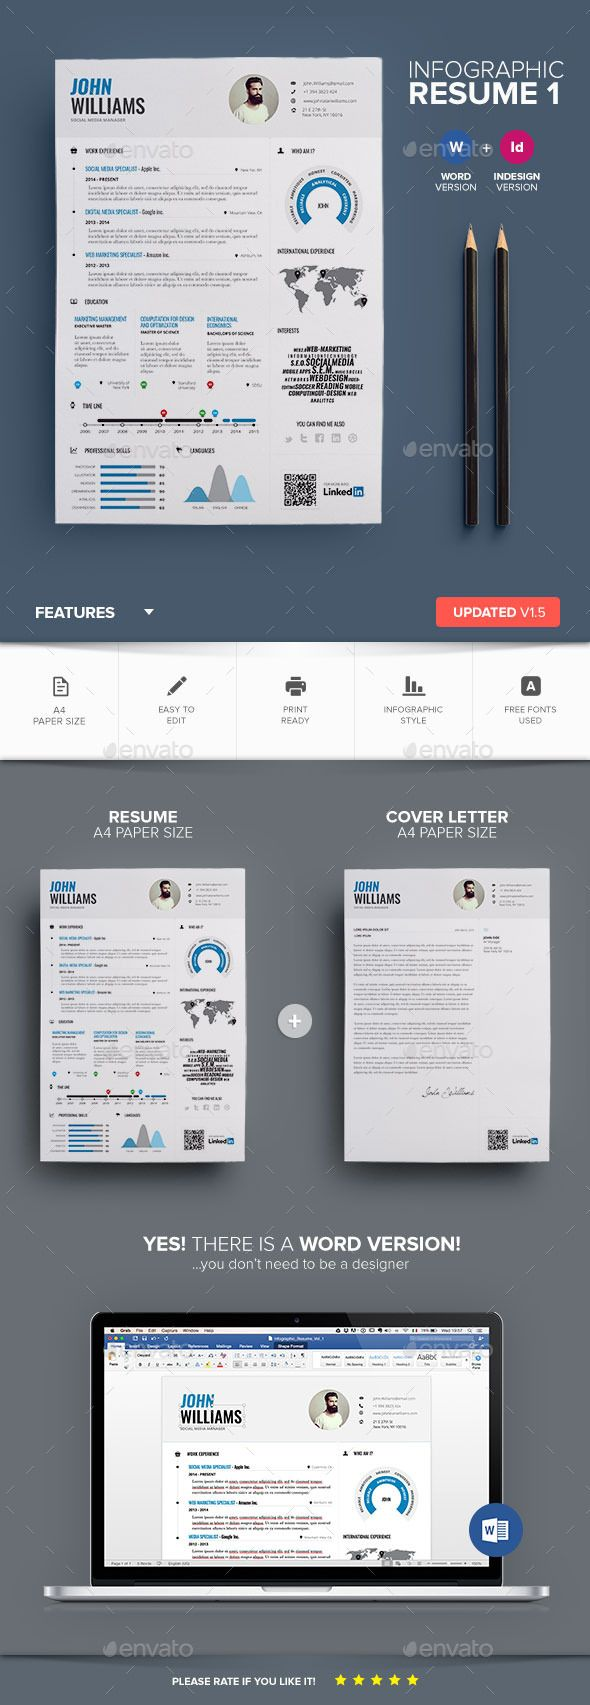 Resume Cv Templates Free Download%0A Map Of South America